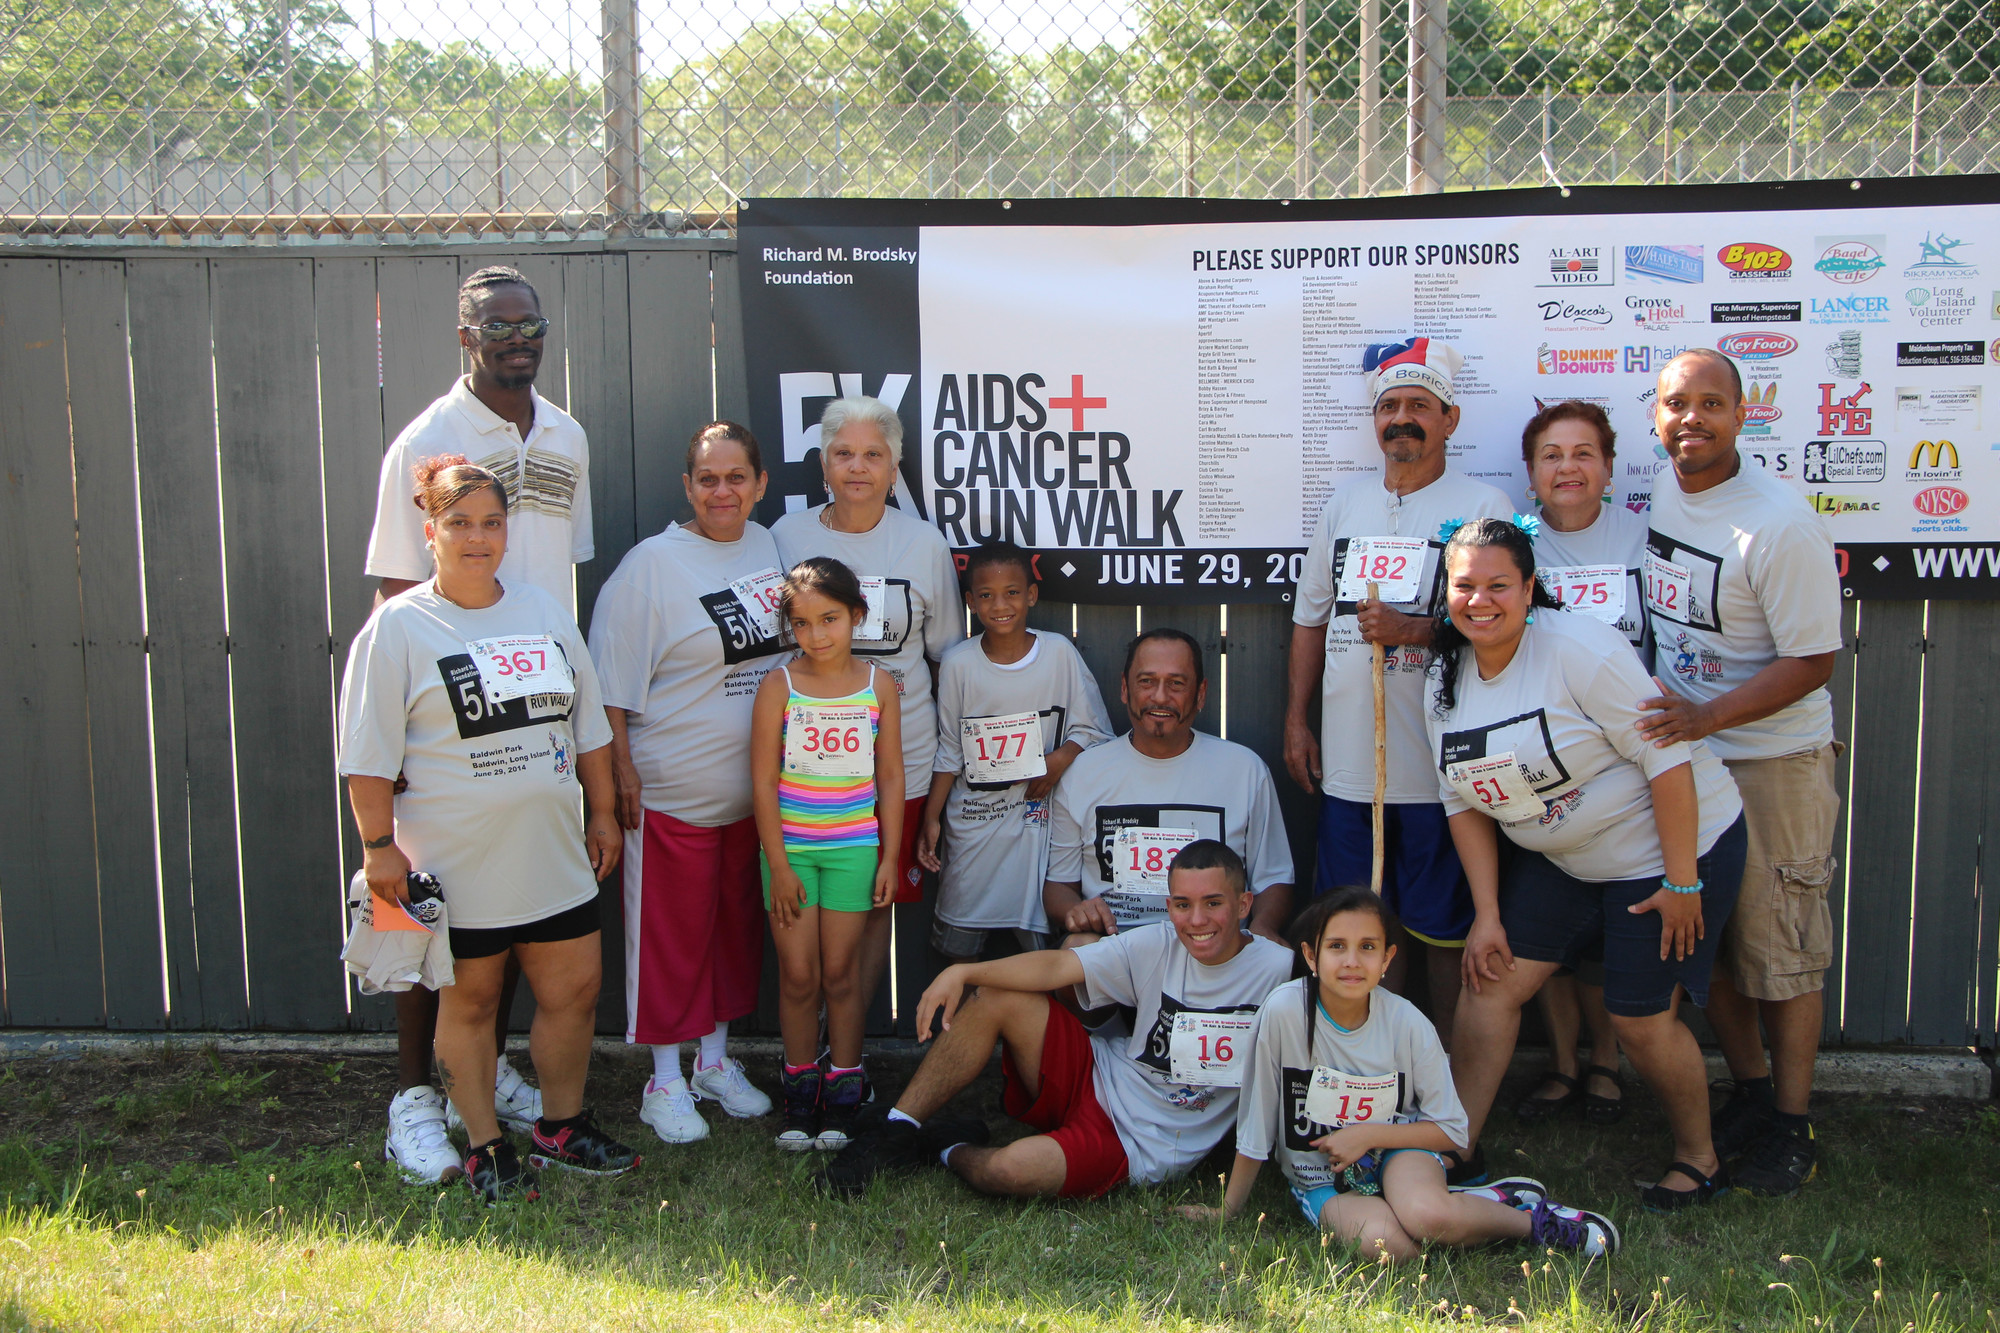 People of all ages ran and walked in the seventh annual 5K Aids/Cancer Run/Walk at Baldwin Park on June 29. The event raised thousands of dollars for toys to be purchased and donated to area hosptials and organizations that help people in need.